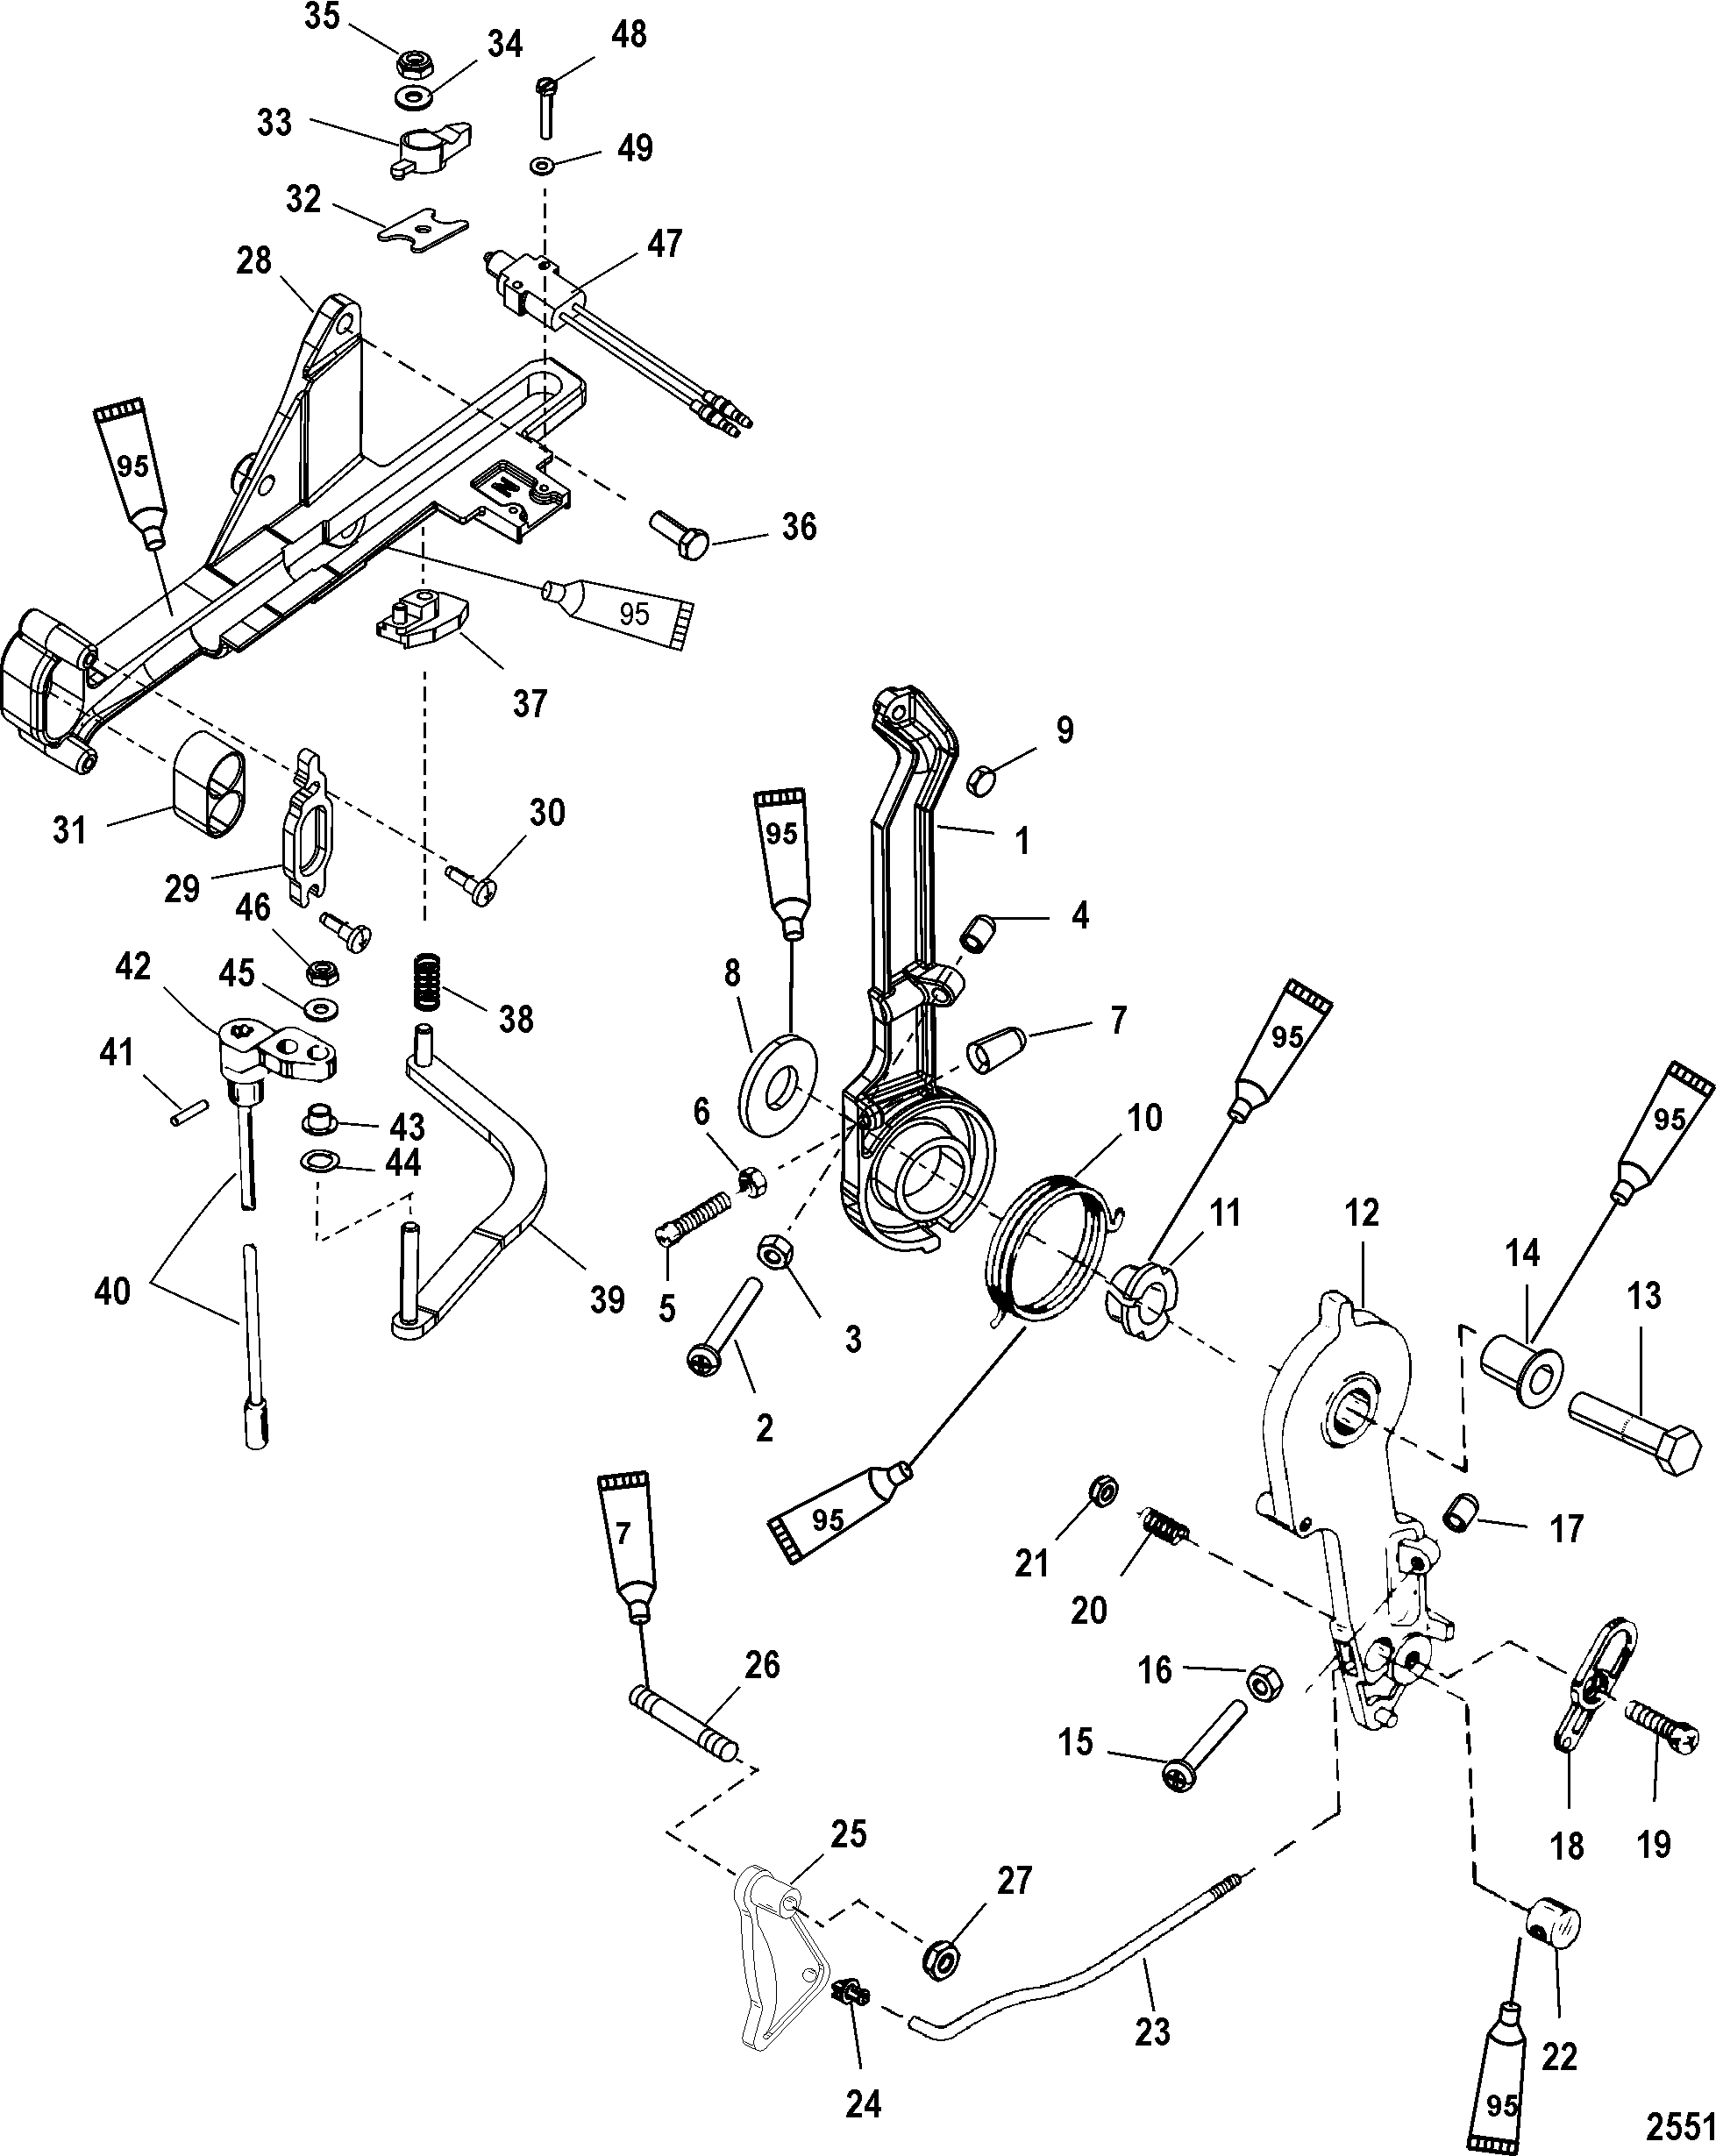 2551 Quicksilver Throttle Lever Wiring Diagram on